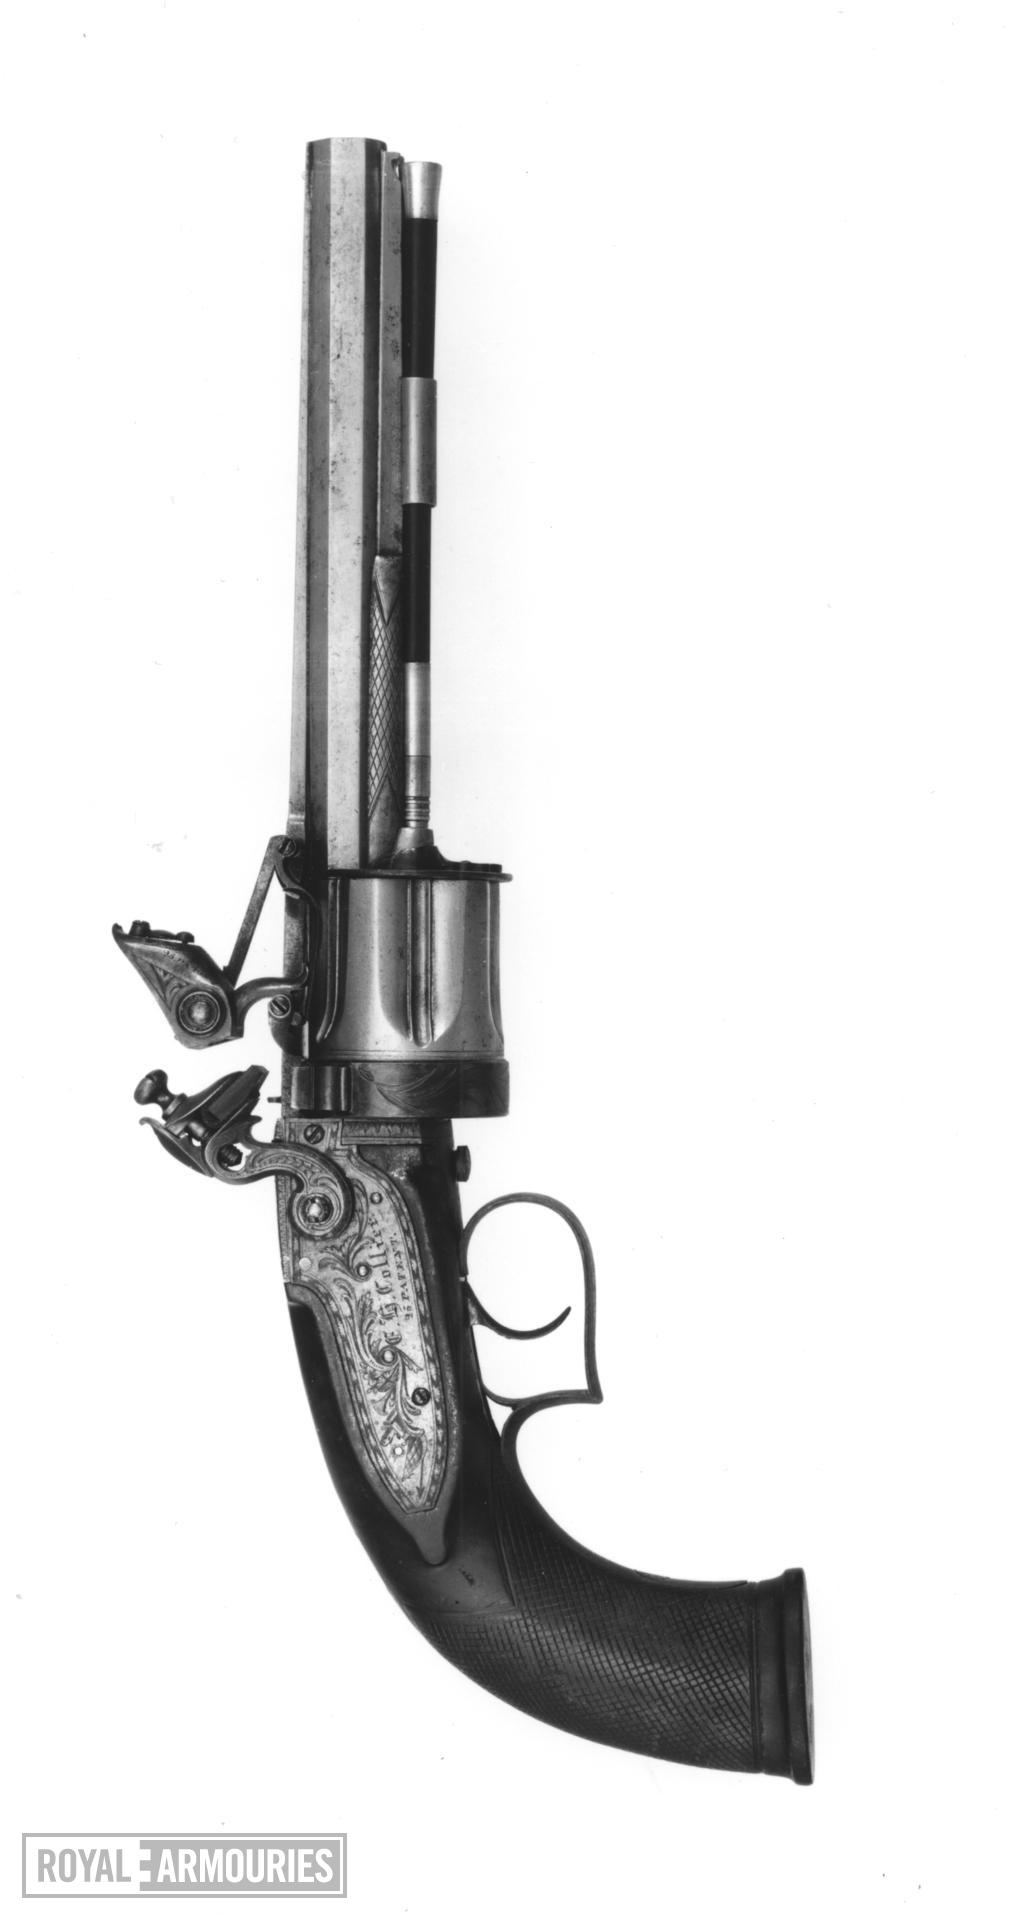 Flintlock six-shot revolver - Collier Patent By Collier. A revolving cylinder pistol that requires the cylinder to be manually turned. It has an octagonal barrel, with single pipe for a wooden cleaning rod. The cylinder is six-shot, and has a frizzen mounted to the right of the barrel, as would normally be found on a standard flintlock pistol. The rotation of the cylinder permits the touch-hole to line up with the frizzen. There is a sliding cover over the touch hole. The trigger guard is squared at the rear, and the butt is fully chequered. The lockplate, tang and top of the barrel are foliate engraved, with the Union Jack and Stand of Arms also incorporated.